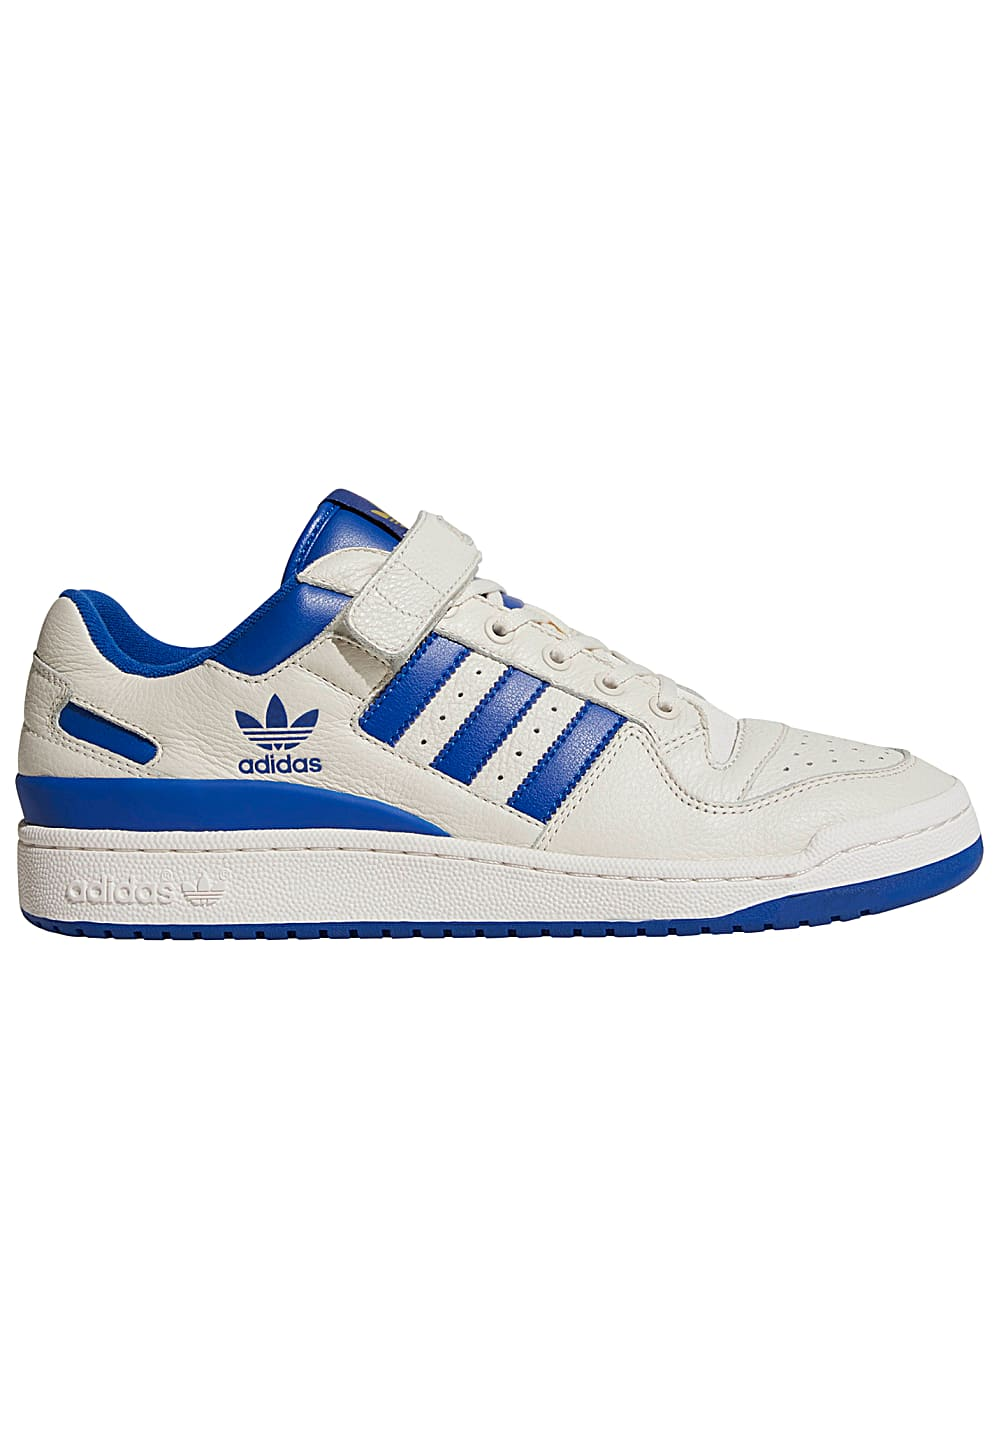 adidas running shoes sale, Mens shoes adidas forum low